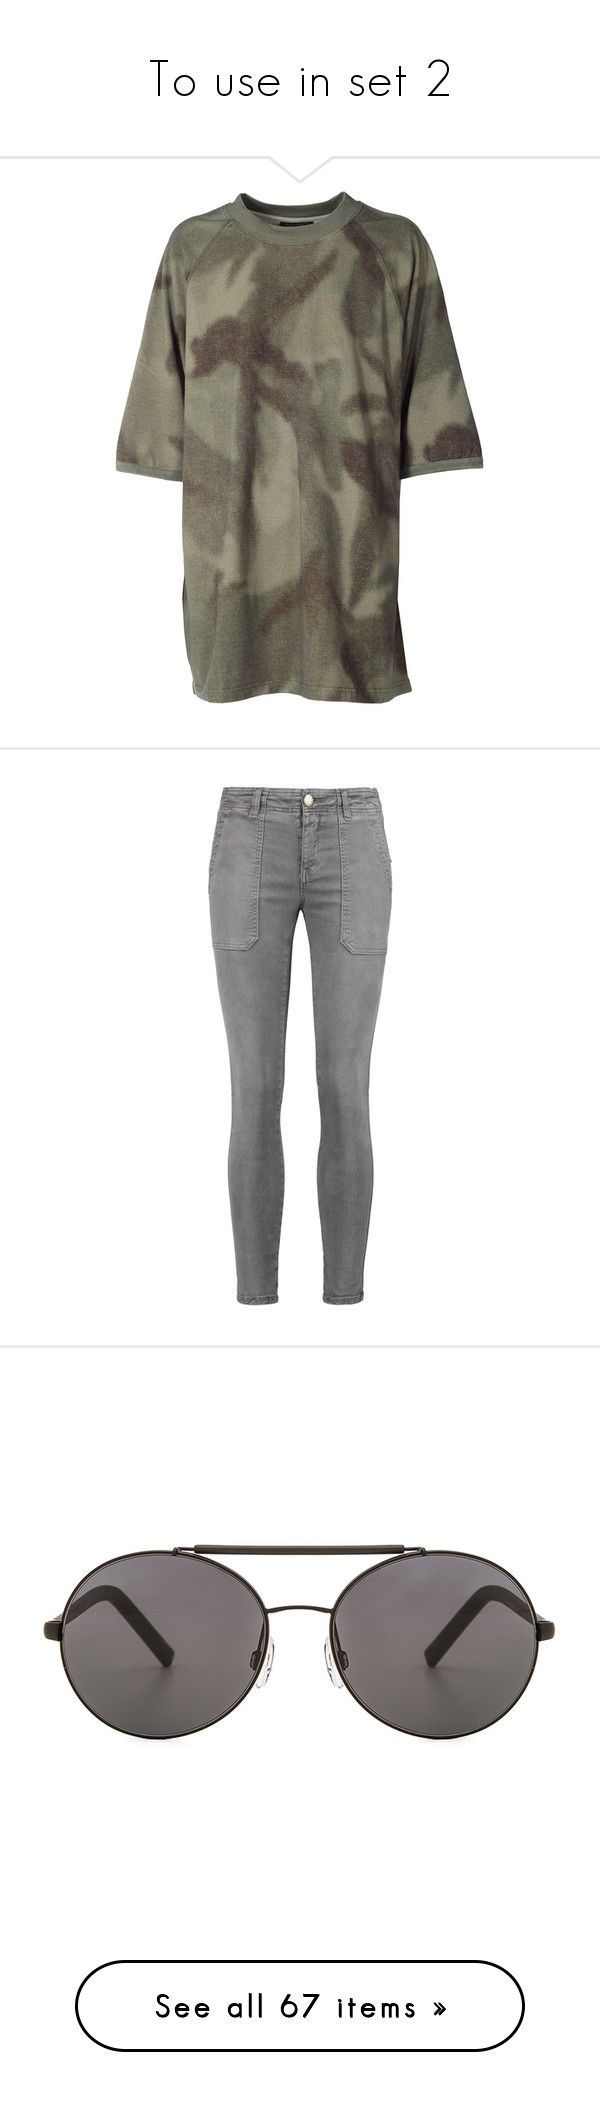 """""""To use in set 2"""" by lilymcenvy ❤ liked on Polyvore featuring tops, t-shirts, clothing - ss tops, verde, short sleeve tee, crew neck top, short sleeve crew neck t shirt, crewneck t shirt, crew neck tee and jeans"""